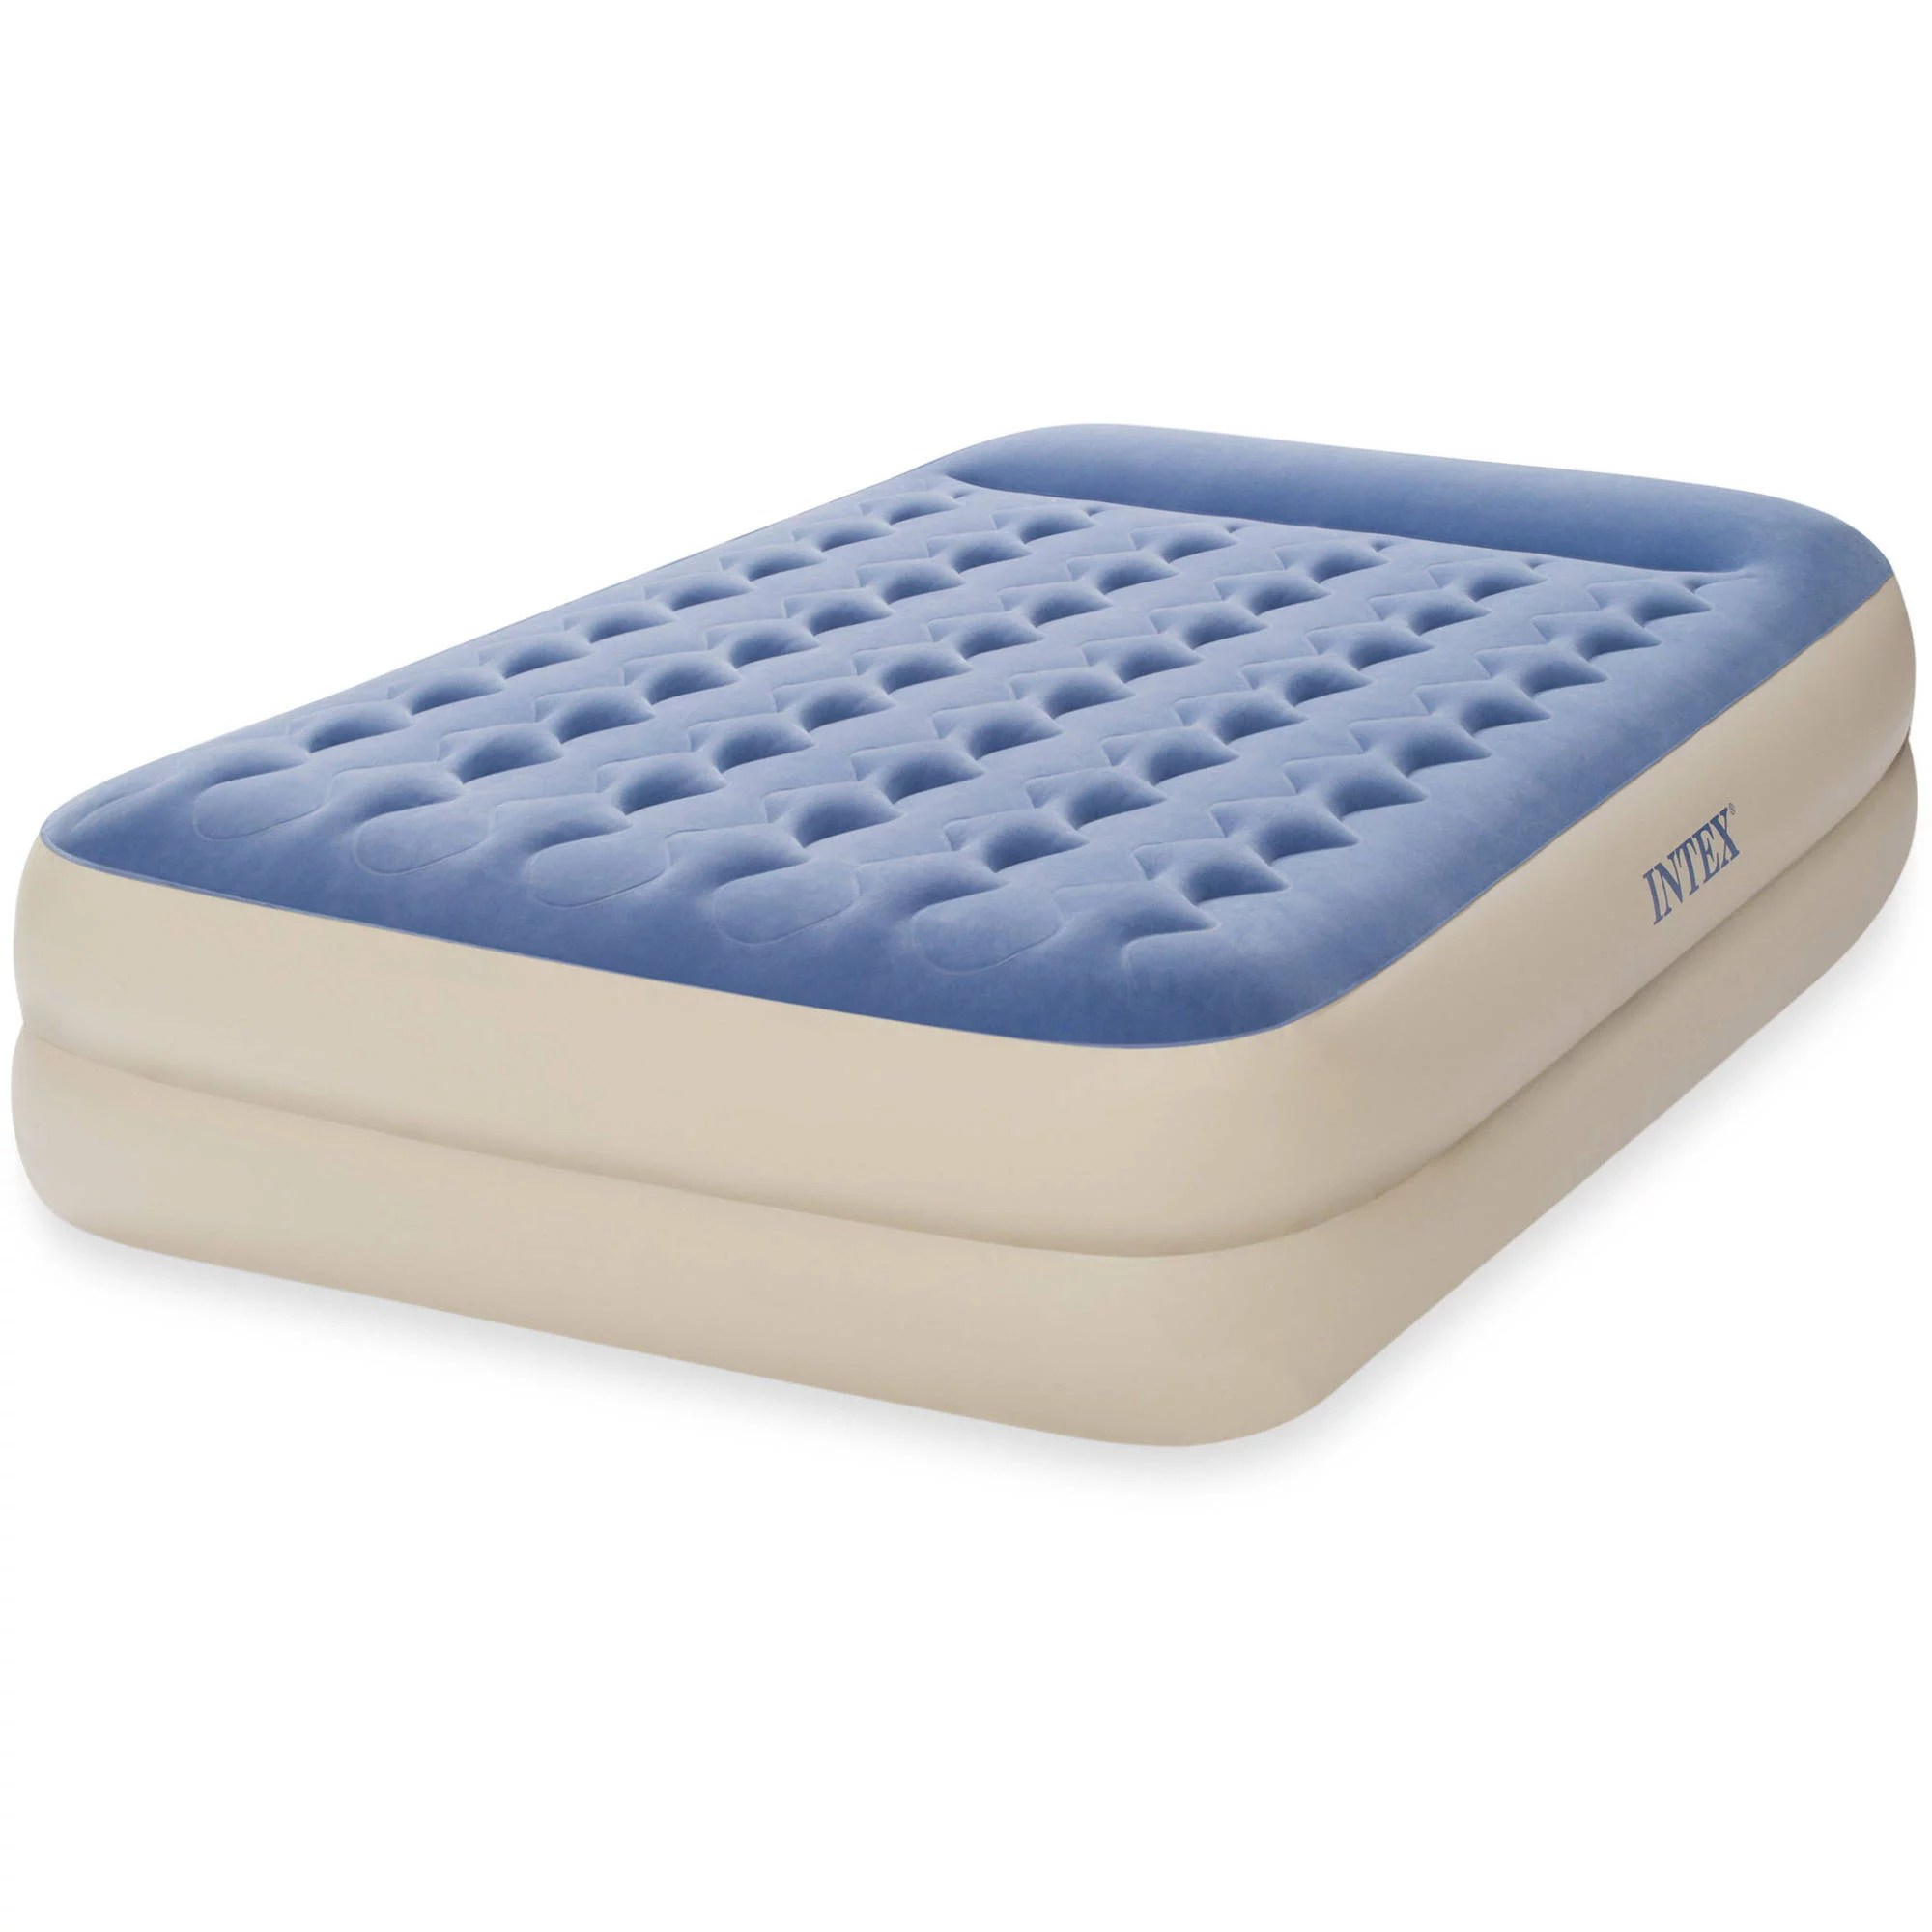 Dura Beds Mattress Intex Queen 18